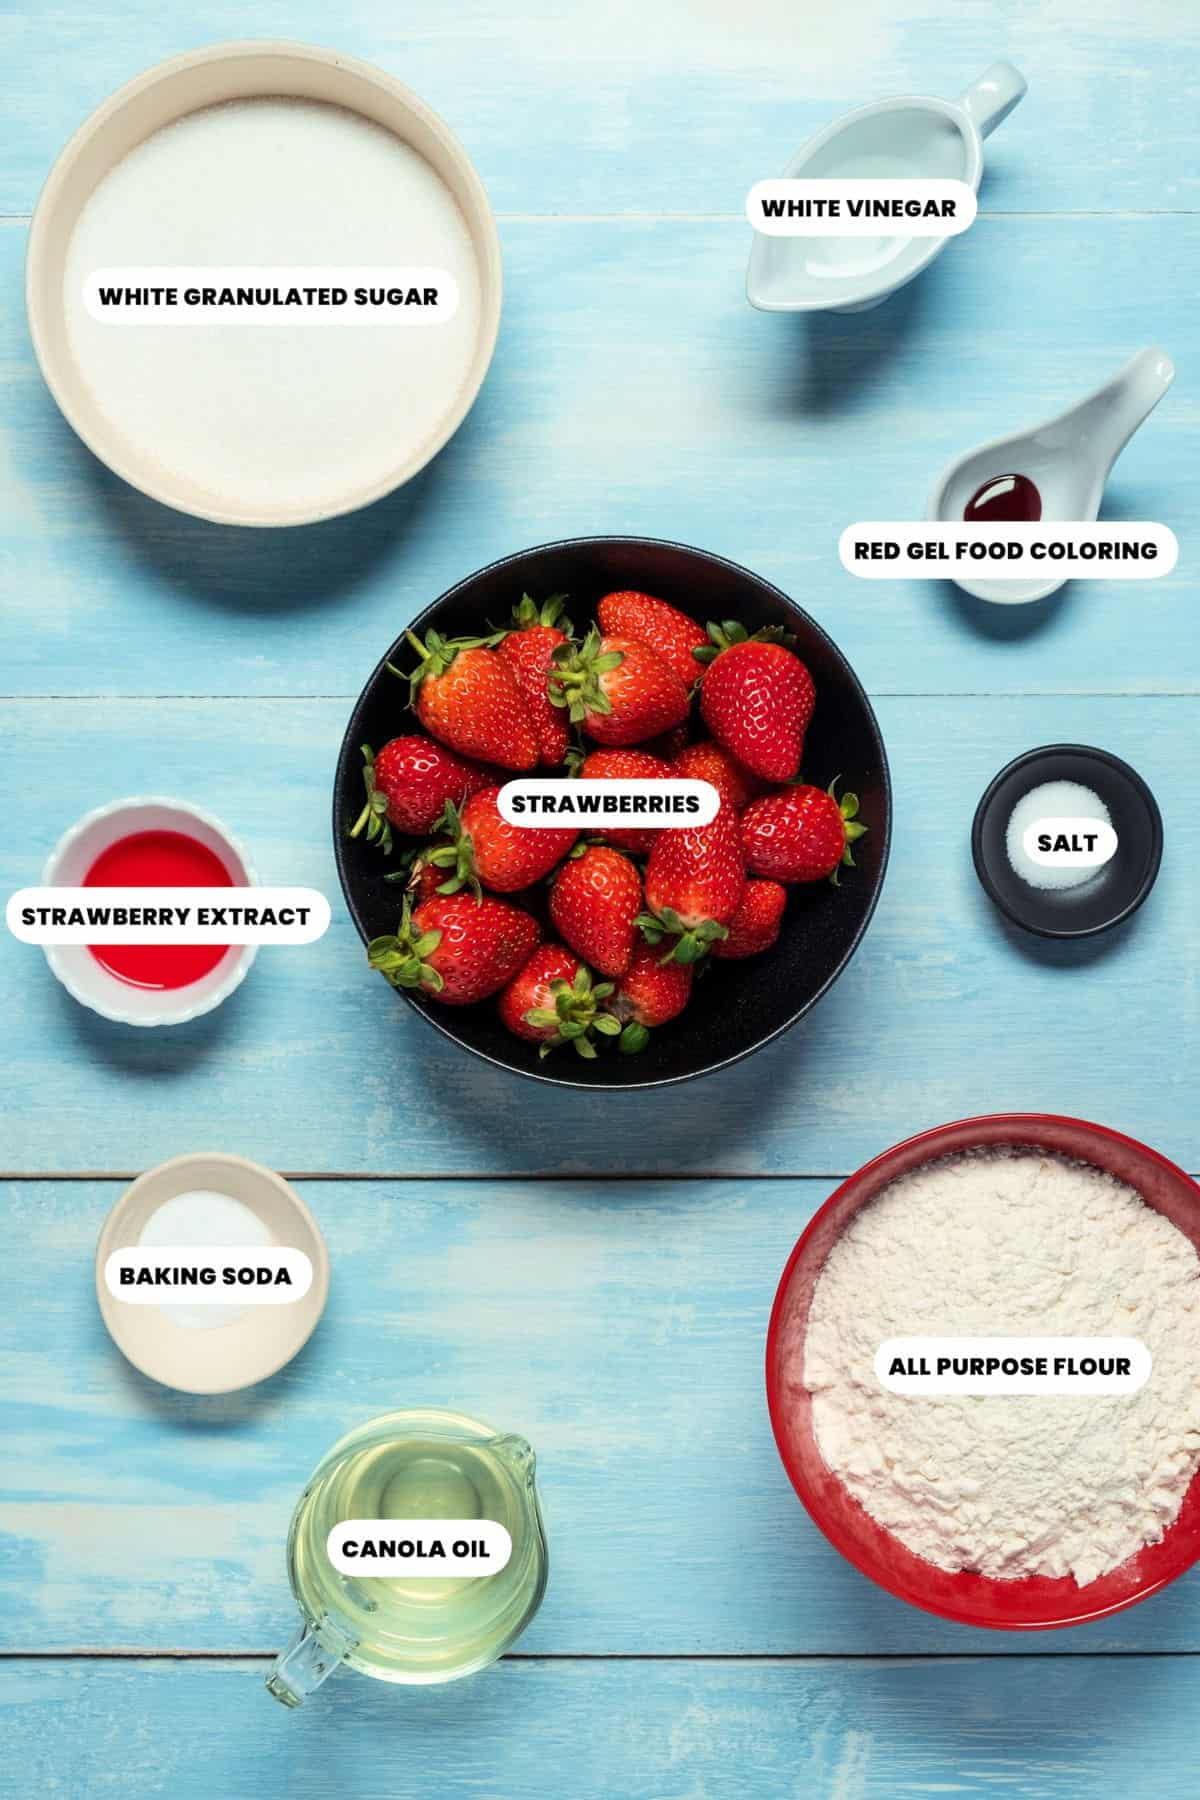 Photo of the ingredients for vegan strawberry cupcakes.